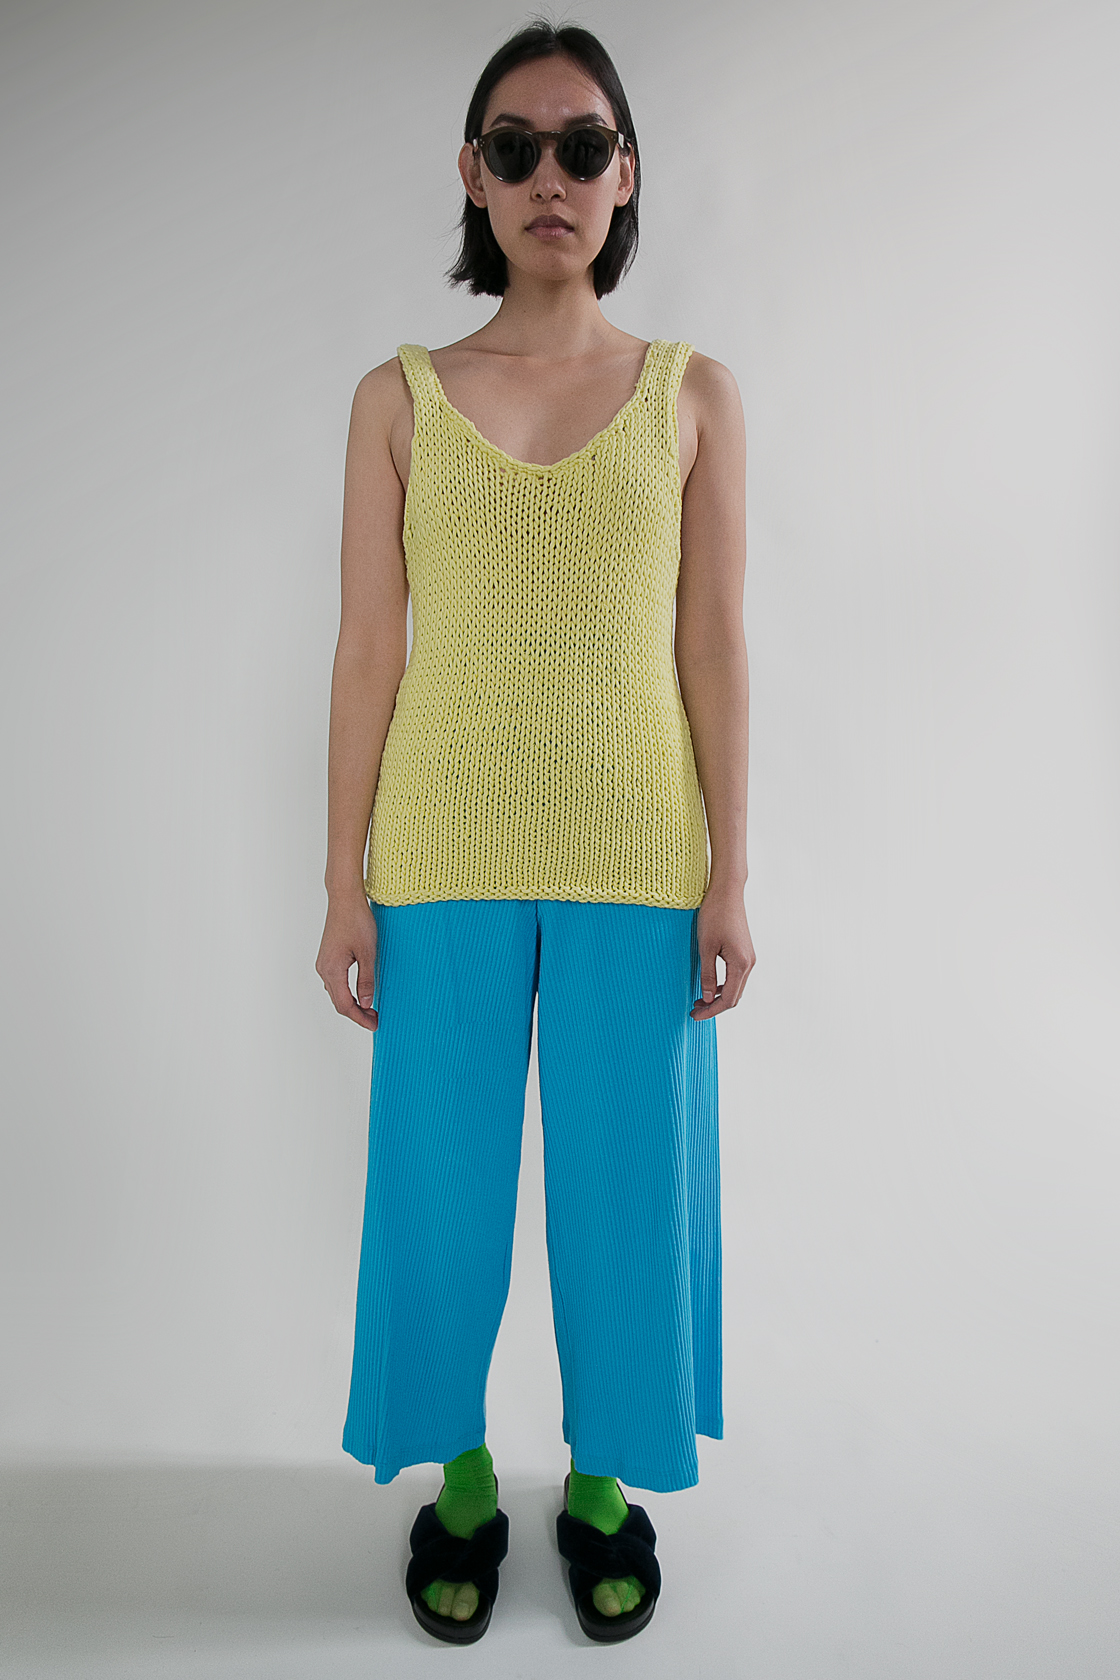 Hand Knitted Lemon Top  S  $225.00